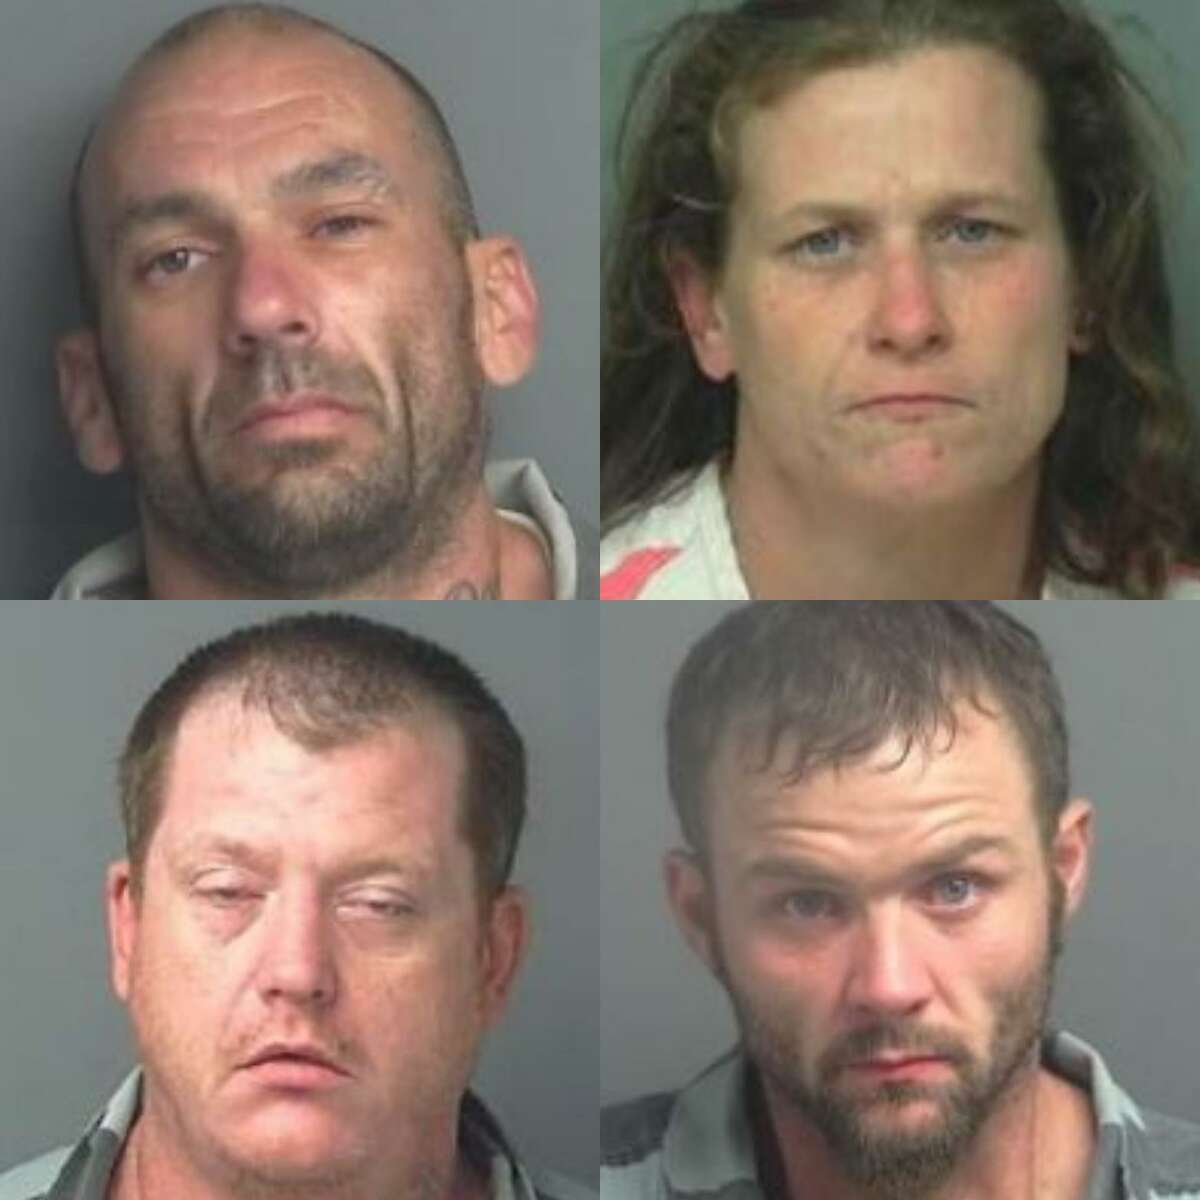 Clockwise from left top, Brian Robert Adams, 37, Bonnie Hough Garcia, 43, Marshall Neal Hough, 46, David Michael Kull, 34, are charged with the felony offense of engaging in organized crime.